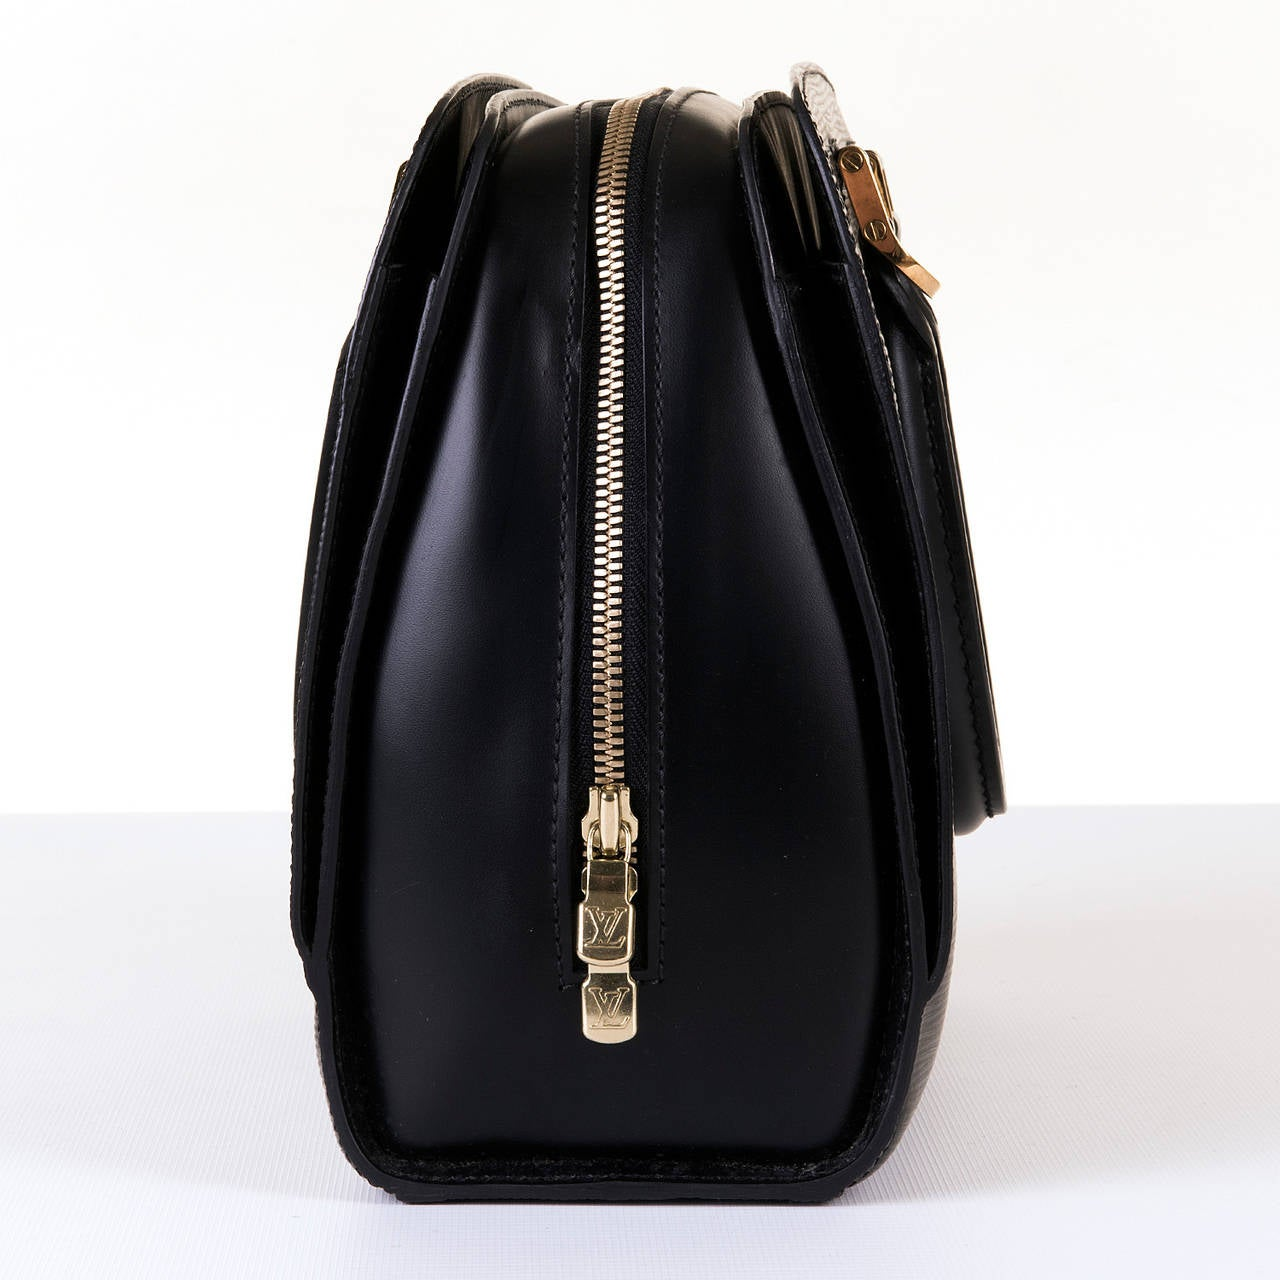 A Super Louis Vuitton 'Pont-Neuf' 25cm Black Epi Bag 4